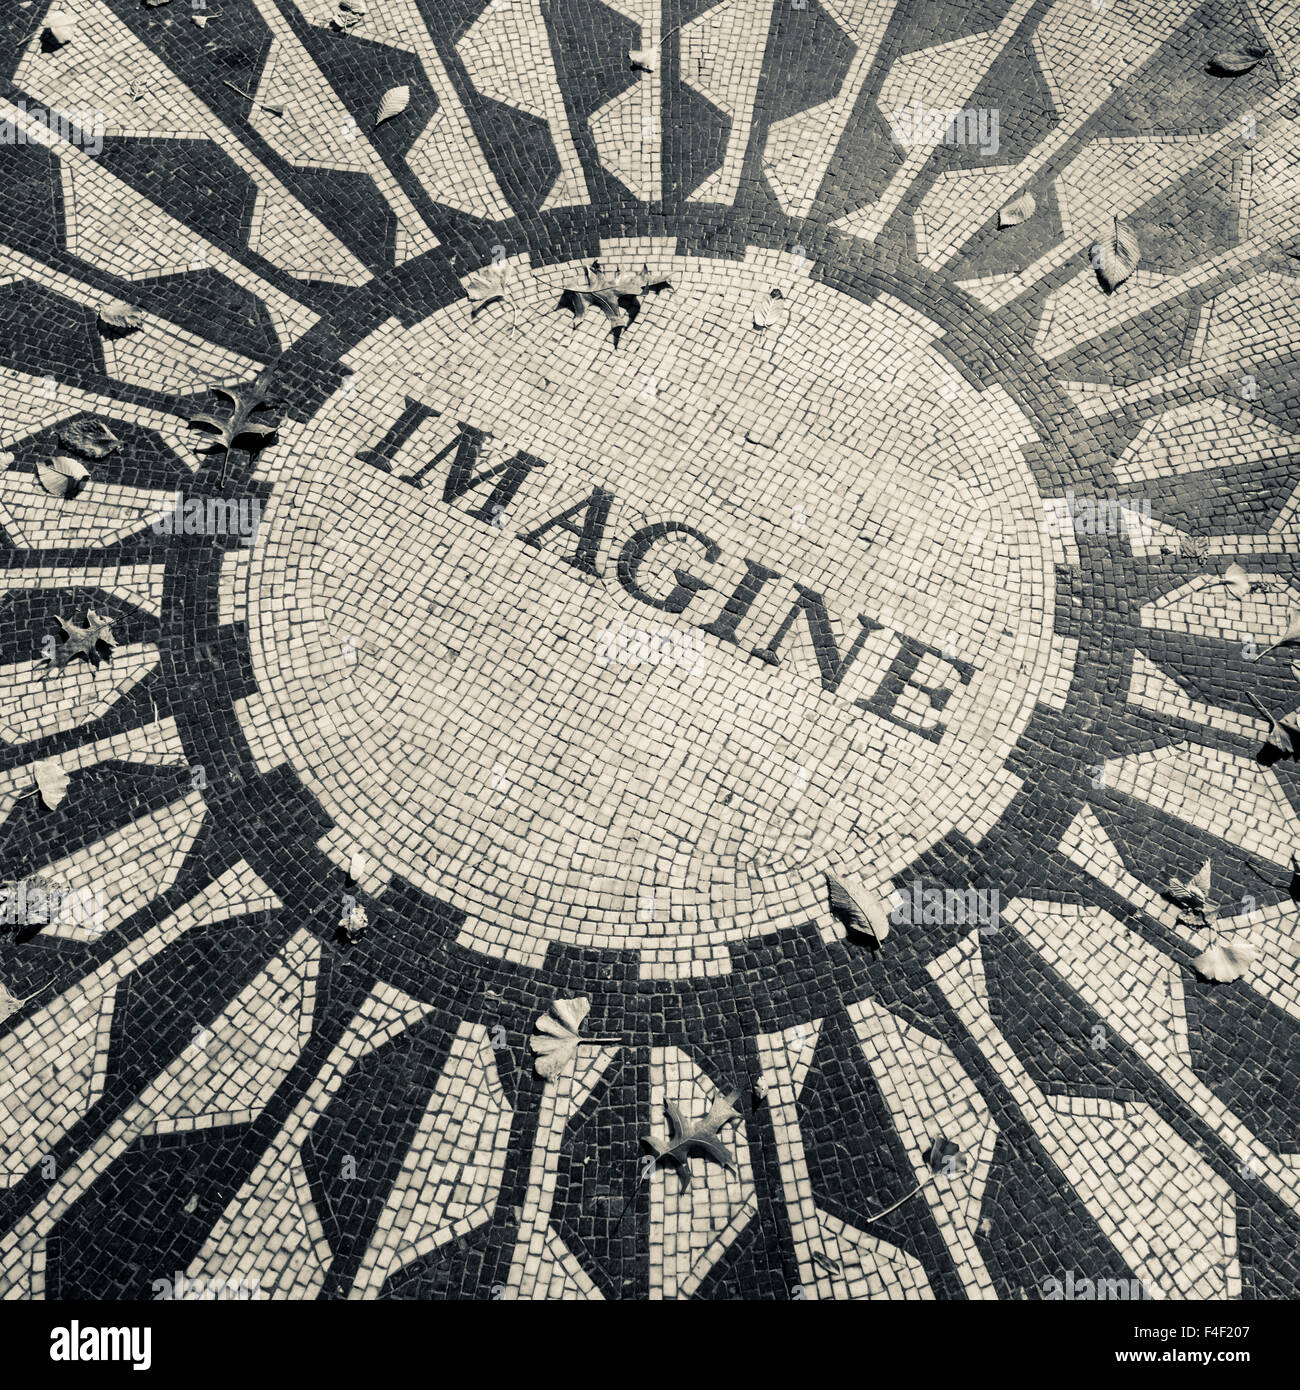 USA, New York, New York City, Central Park, John Lennon Memorial, Imagine, Strawberry Fields (Large format sizes - Stock Image